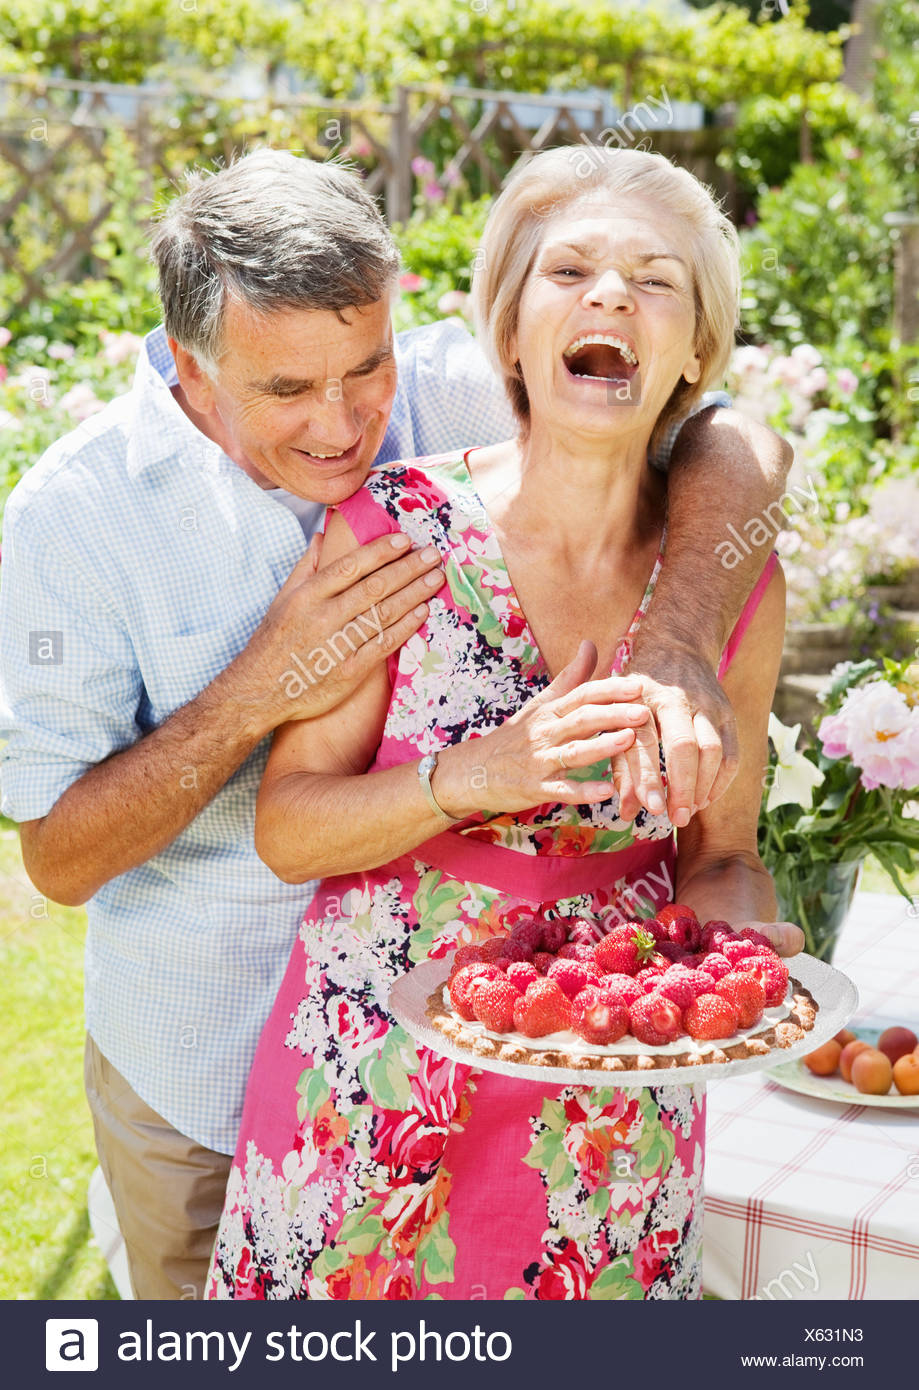 man tries to steal strawberry of tart. - Stock Image